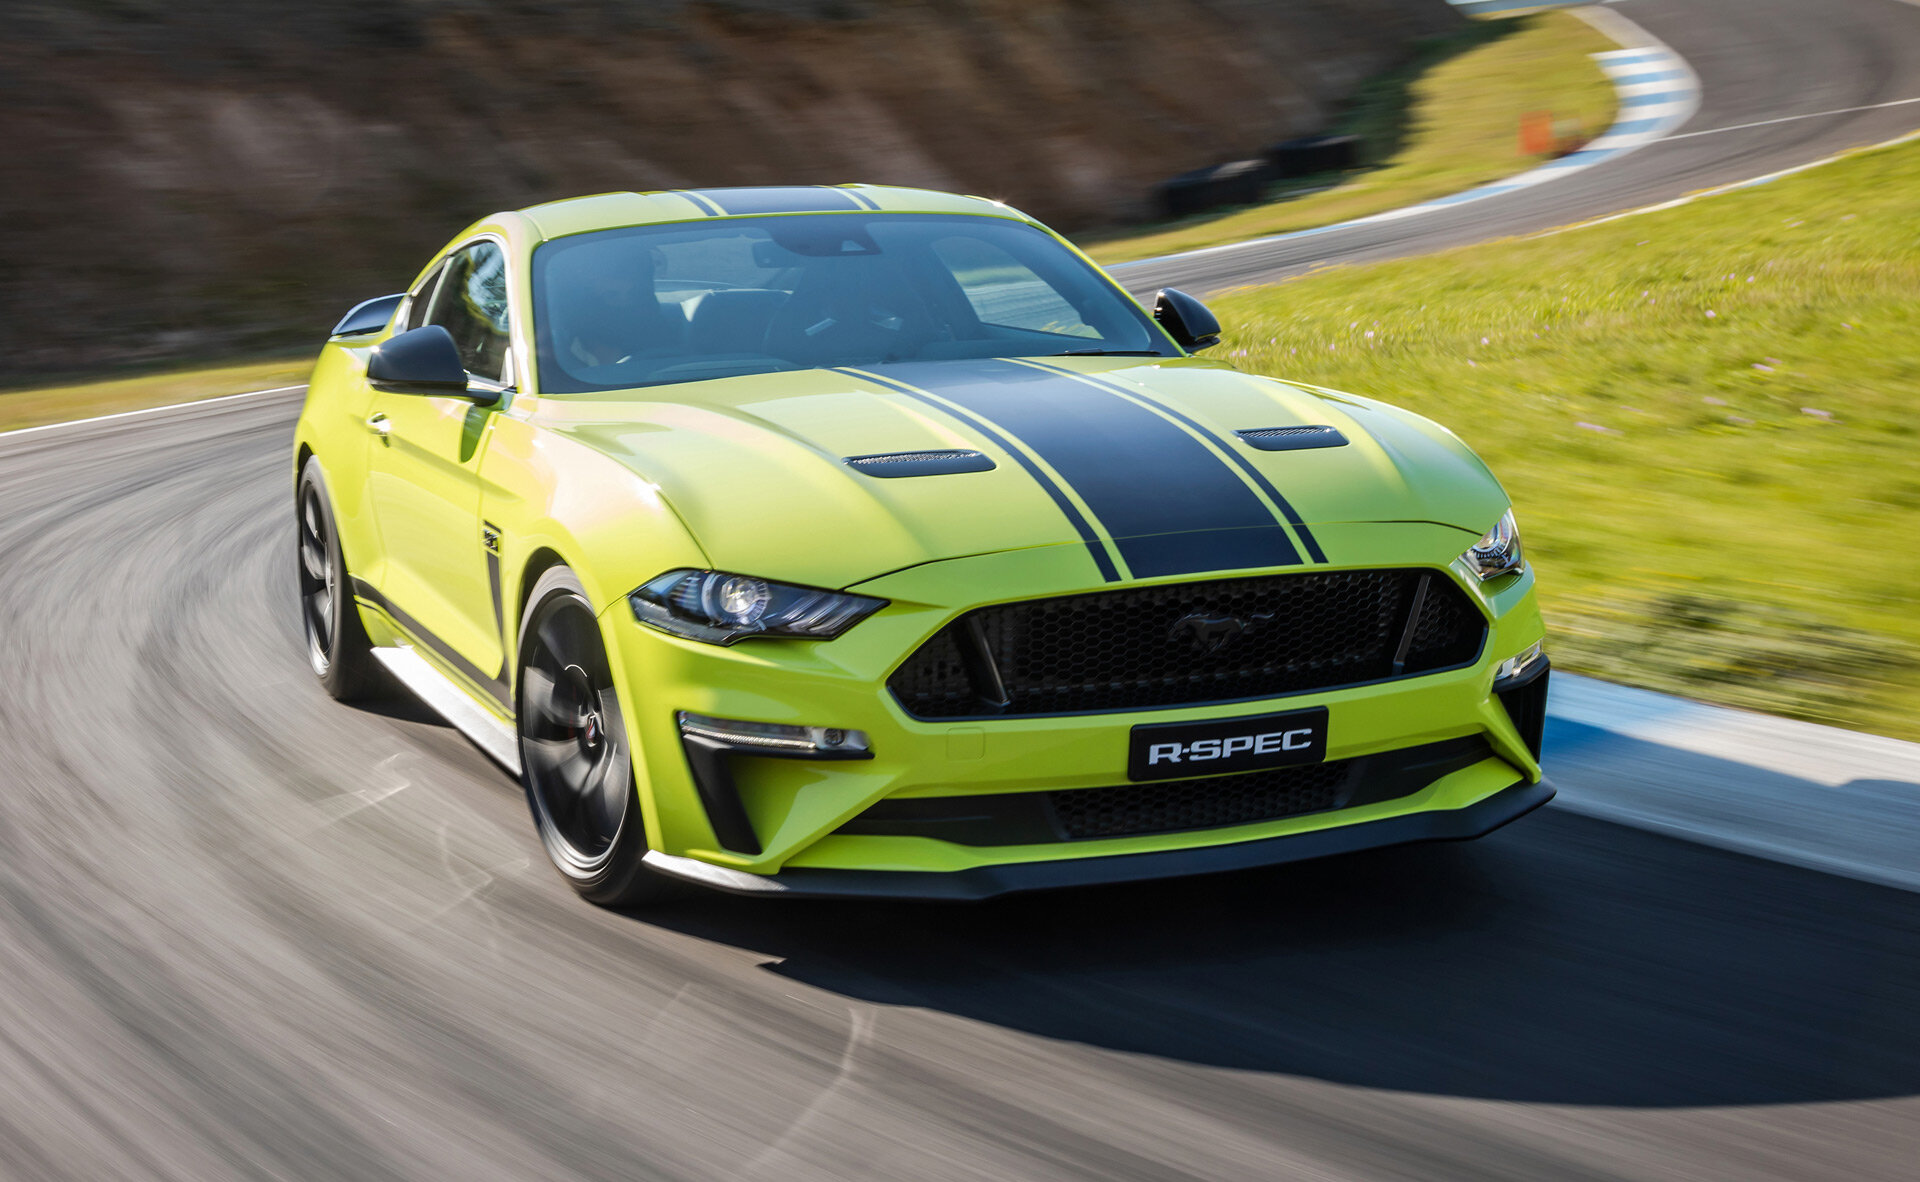 2020-ford-mustang-r-spec-700-hp-supercharged-australia.jpg